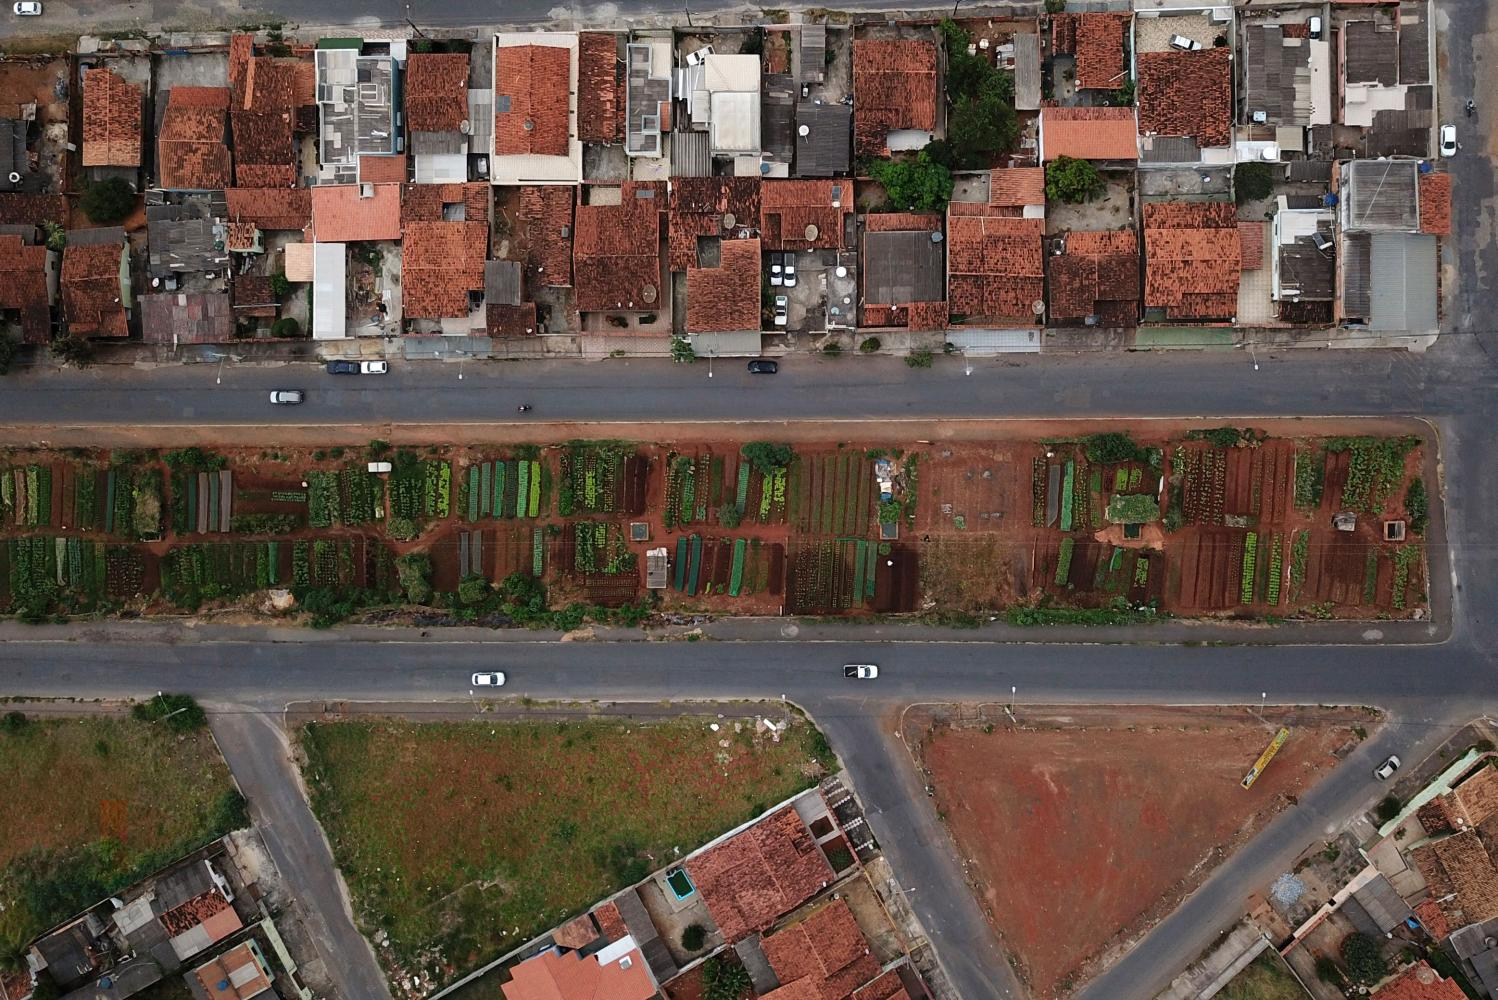 A view of urban community gardens, a source of income for families struggling with their basic living needs amid Covid-19, in Sete Lagoas, Brazil.(AFP photo)